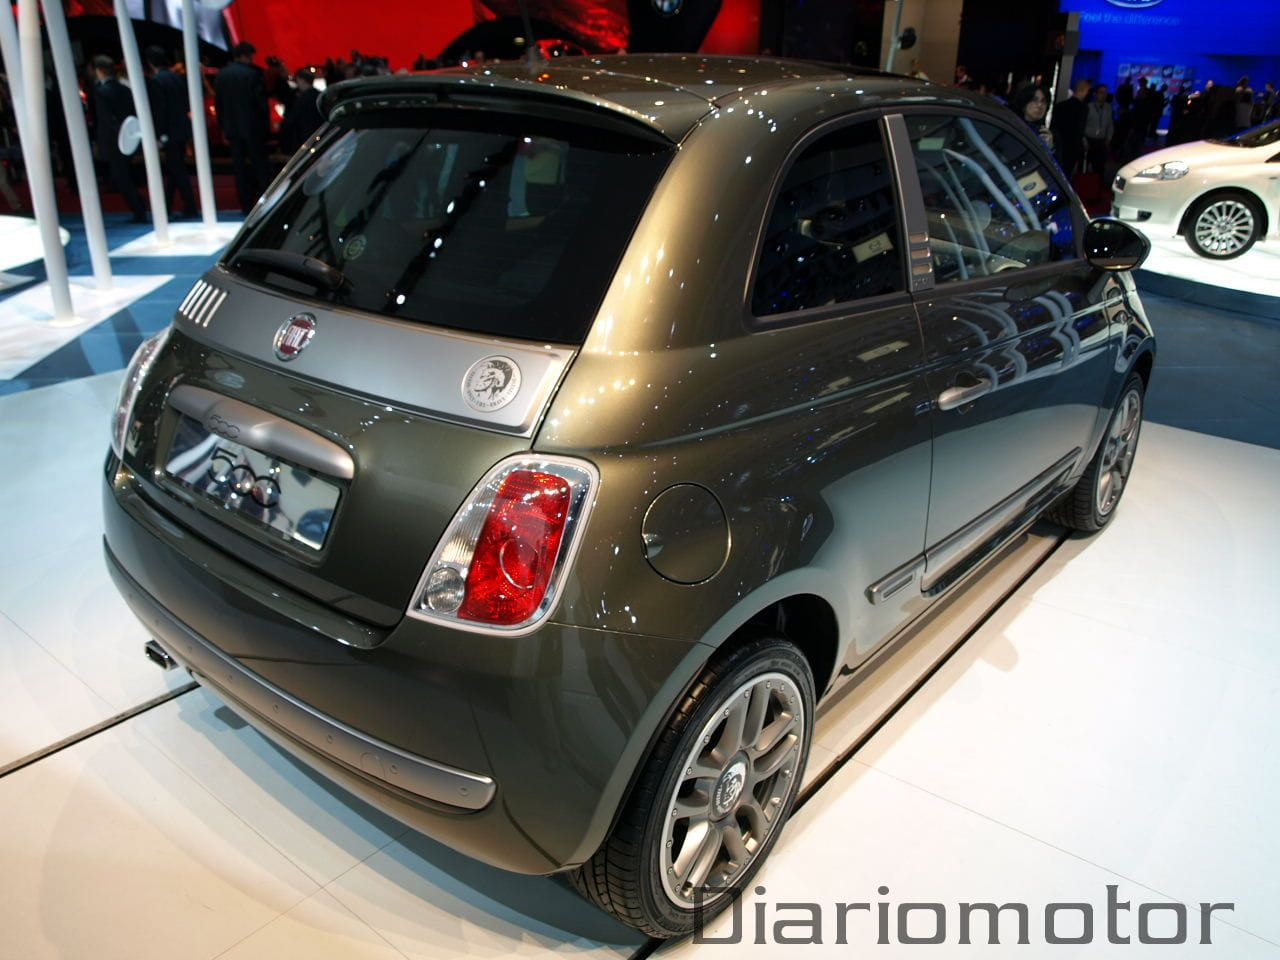 fiat 500 diesel en par s 2008 foto 10 de 13. Black Bedroom Furniture Sets. Home Design Ideas